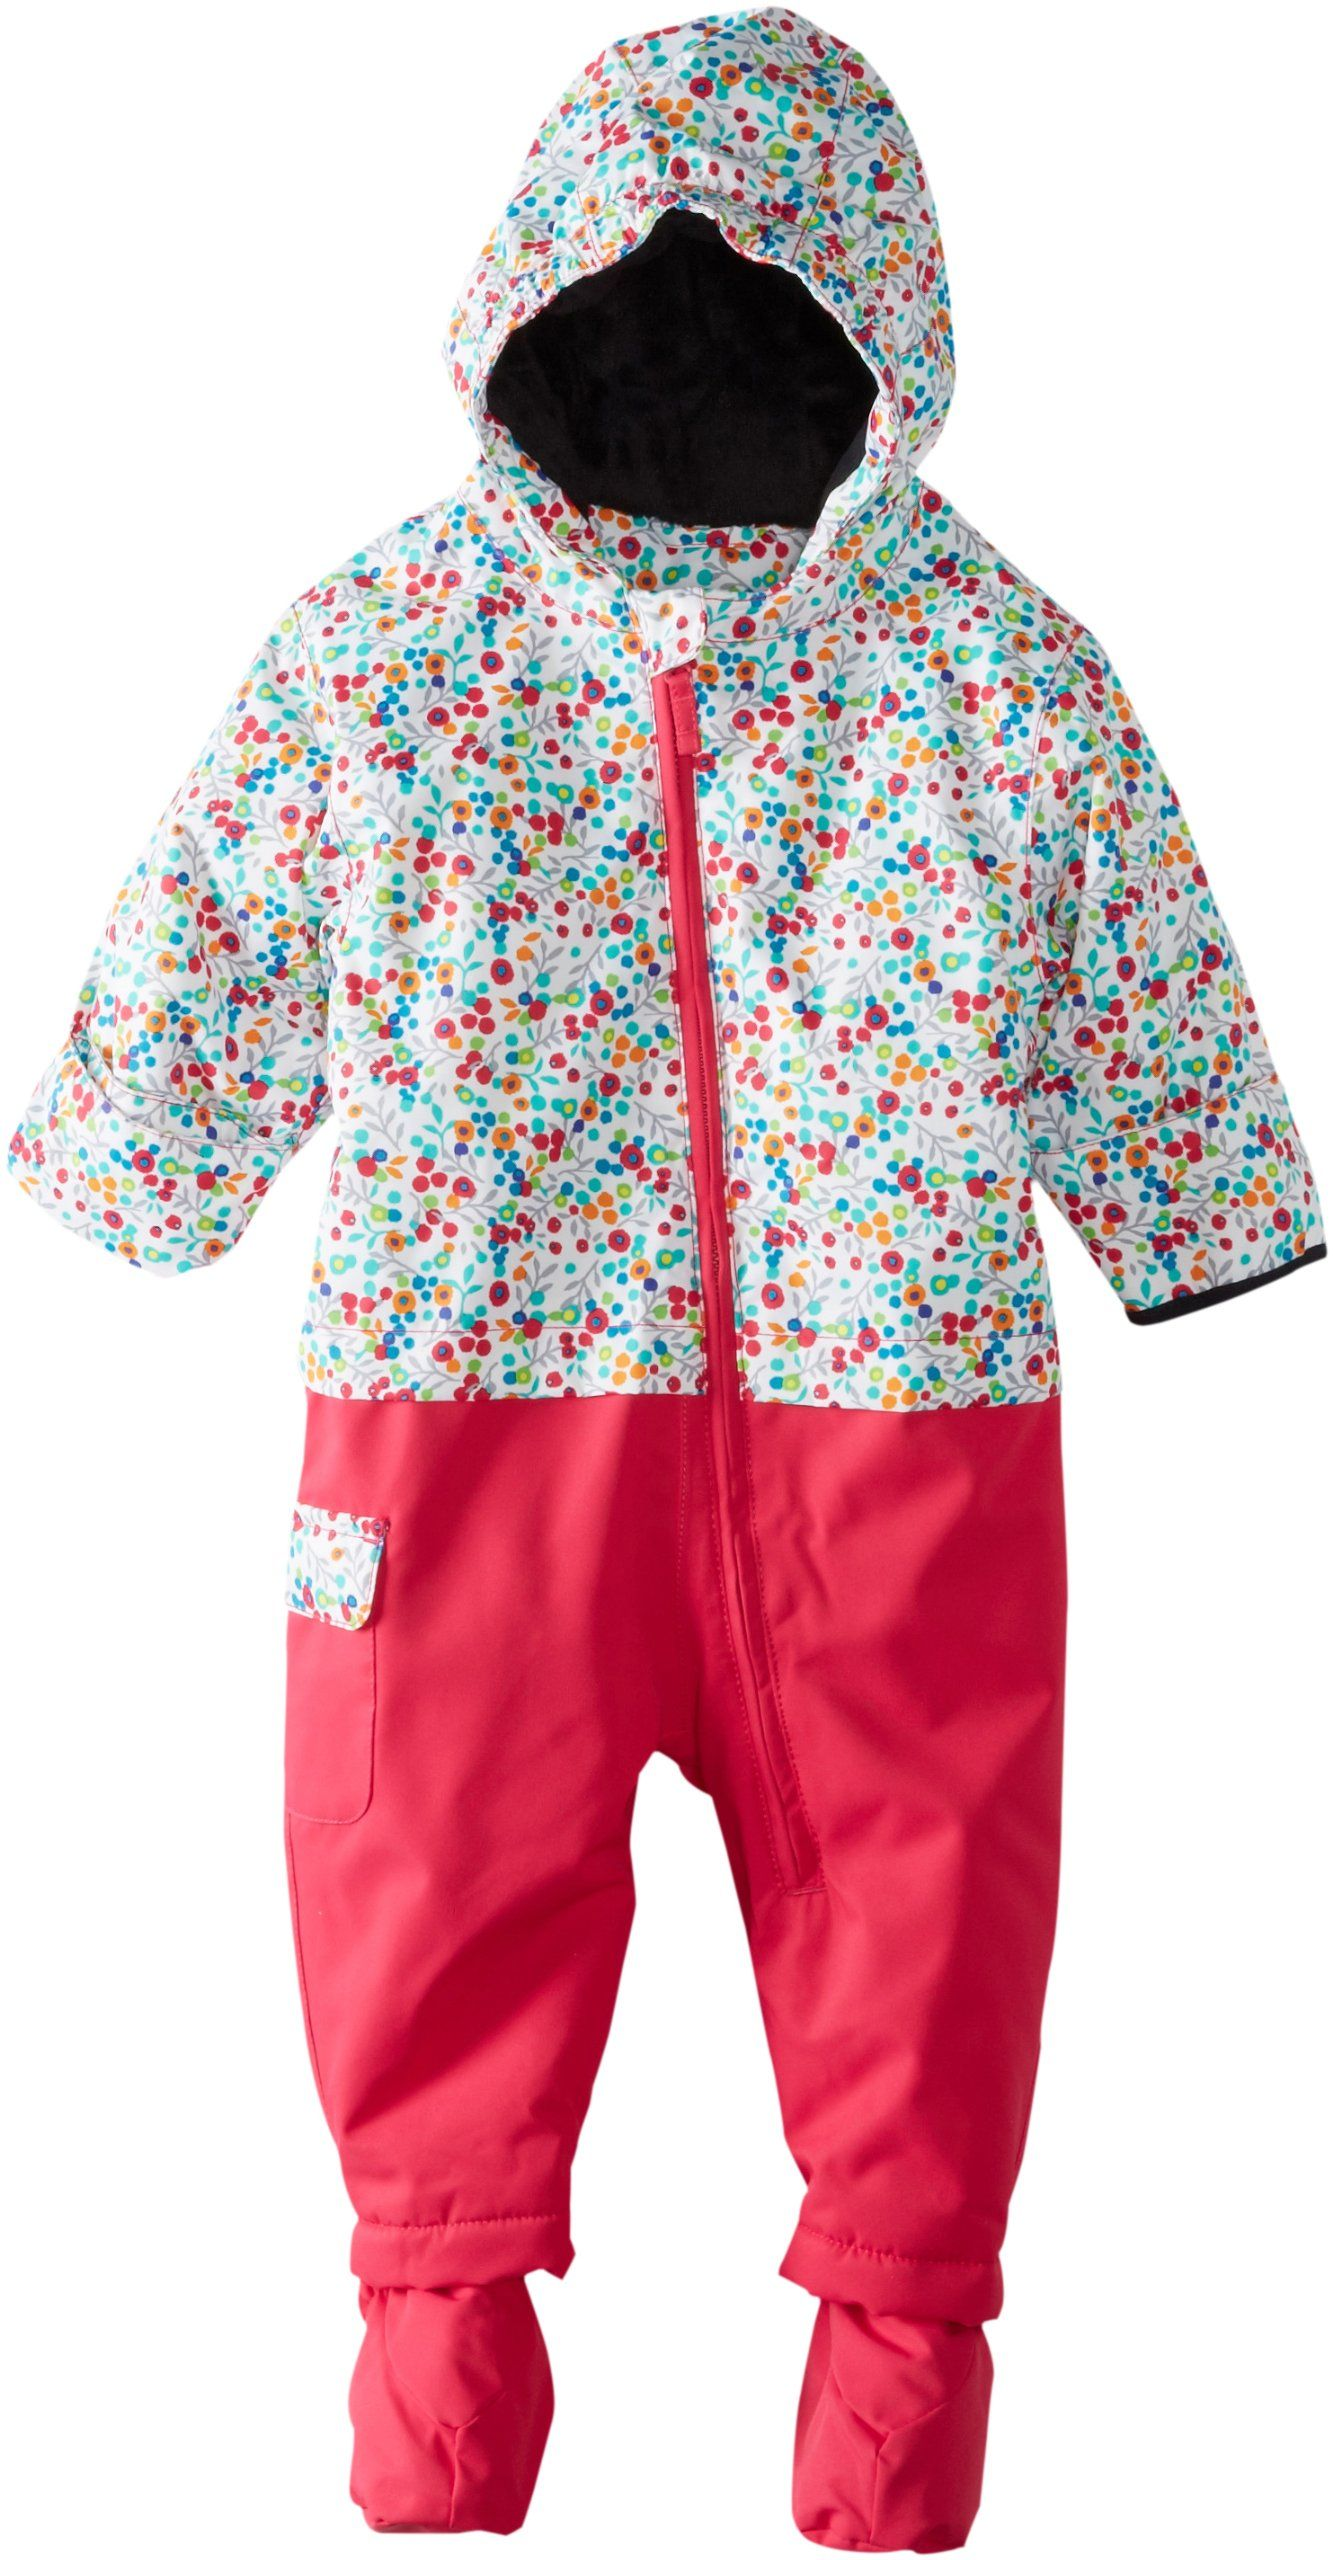 Roxy SNOW Baby Girls Sweet Pea e Piece Floral 12 Months